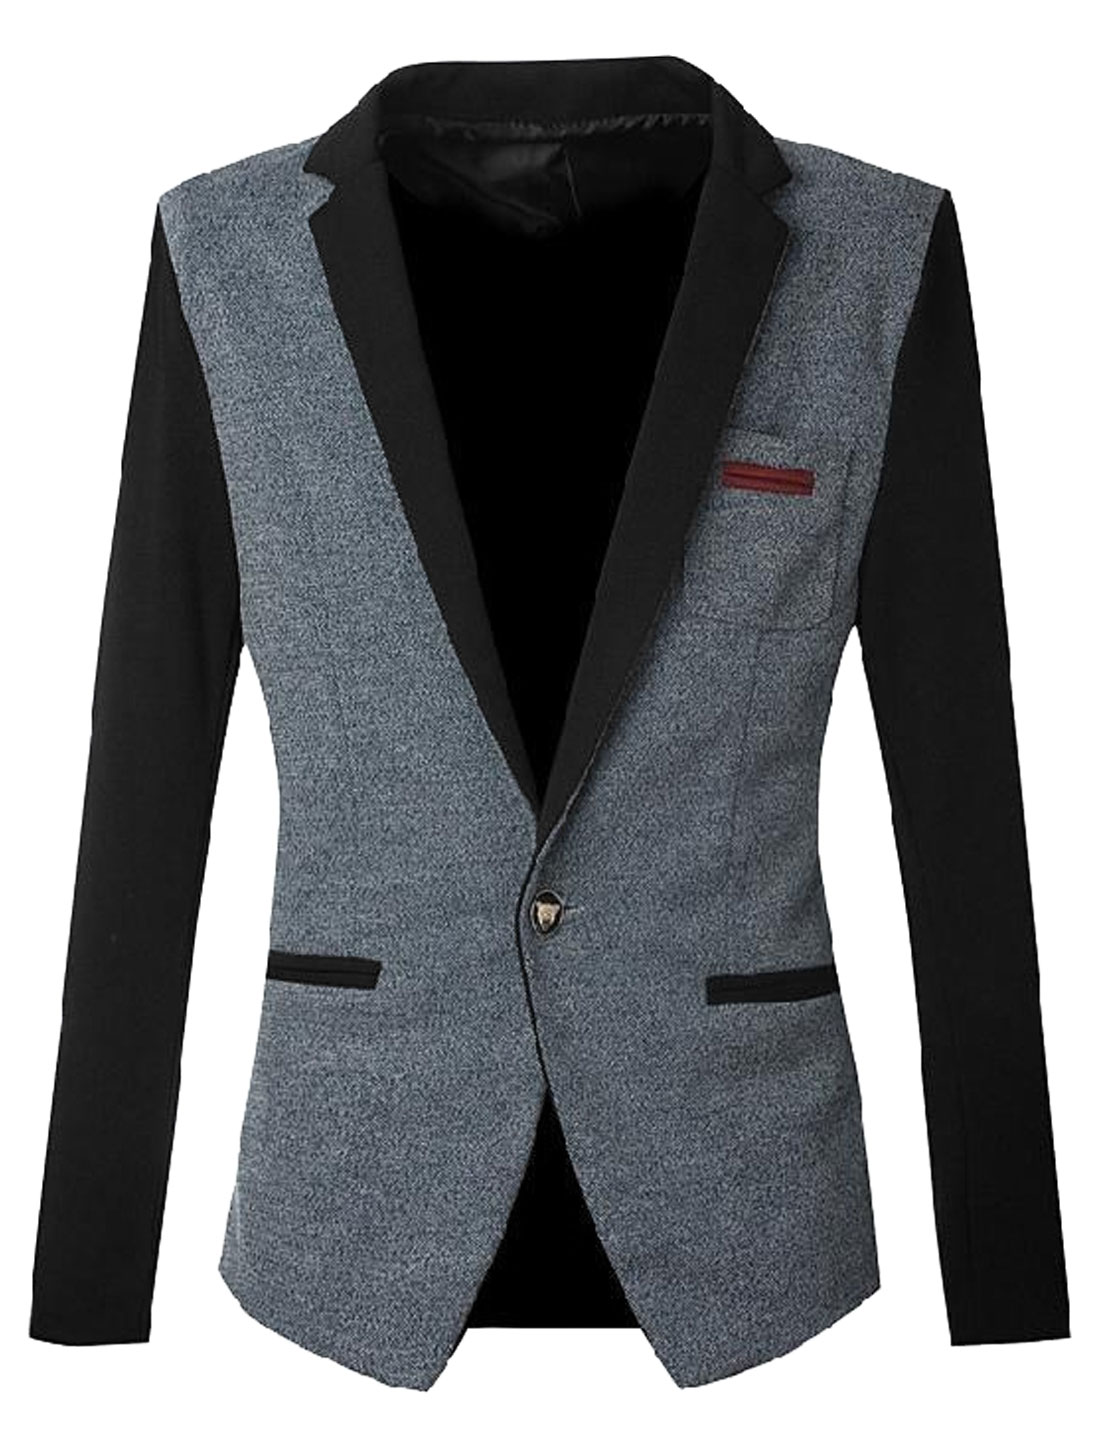 Slim Fit Casual One Pocket Chest Fashion Blazer Jacket for Men Navy Blue Black S